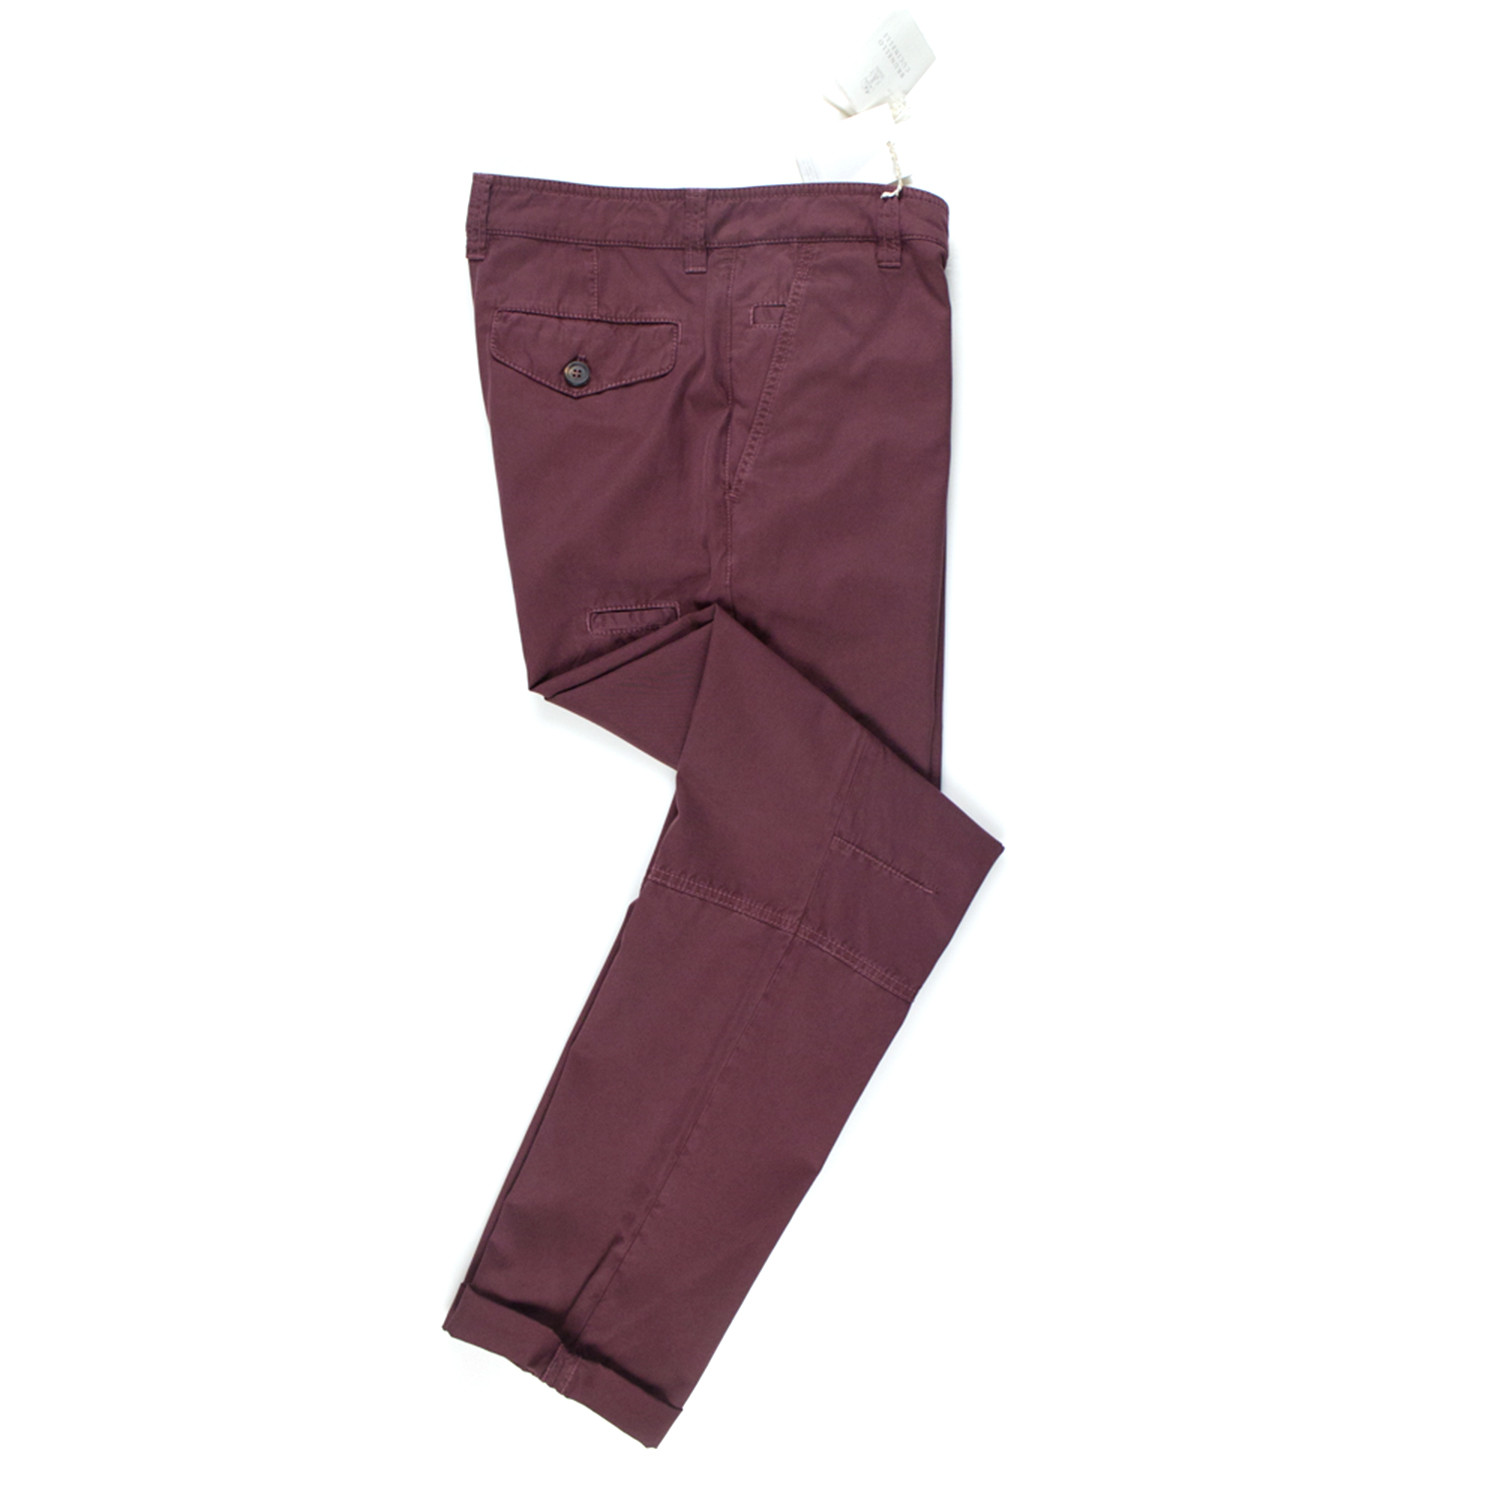 Brunello Cucinelli Mens Burgundy Cotton Pants 54 38